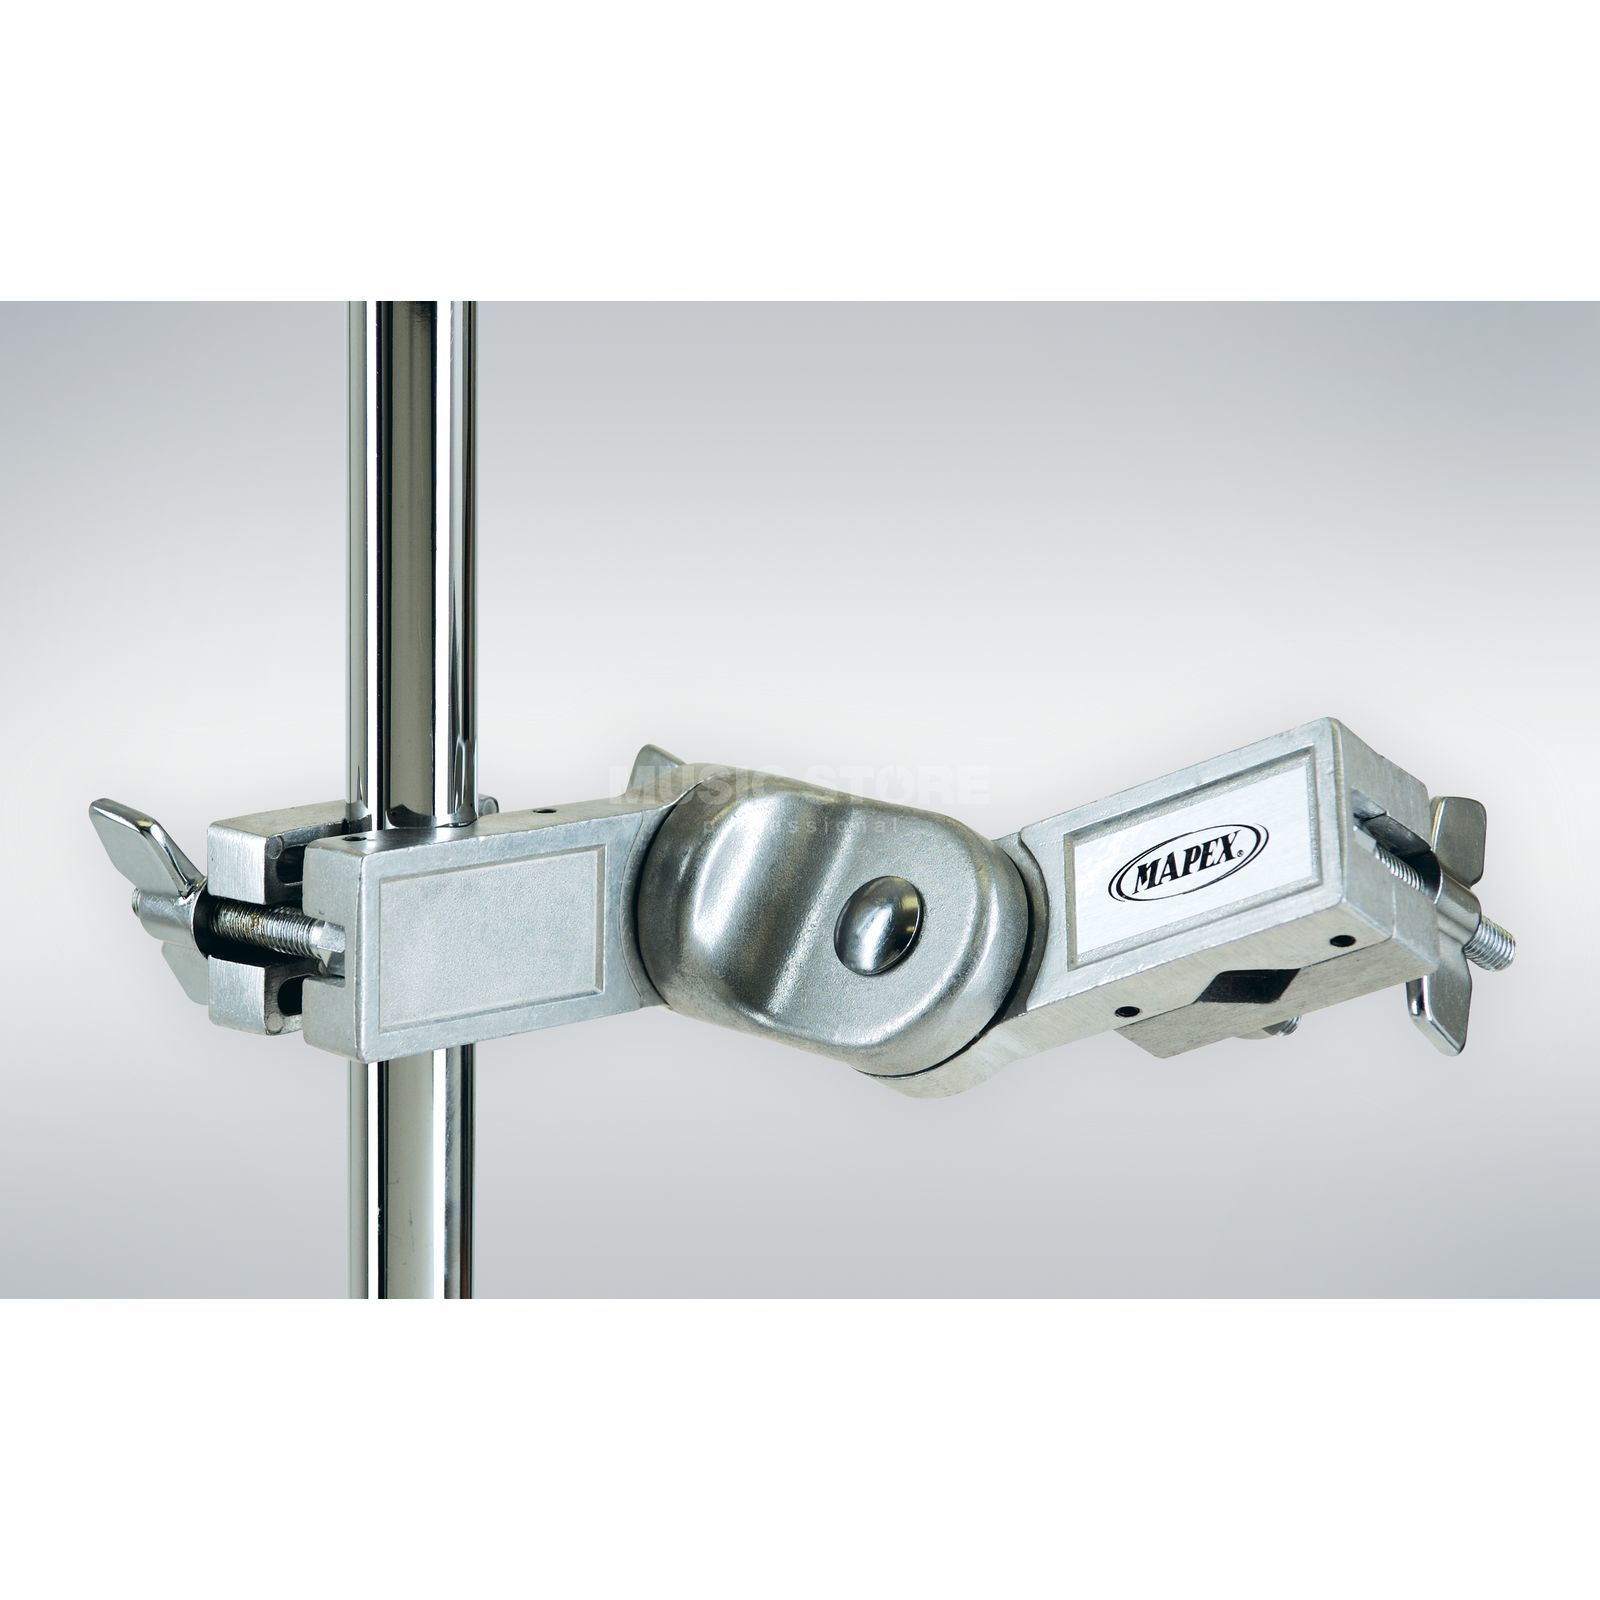 Mapex Multi Clamp AC902  Product Image